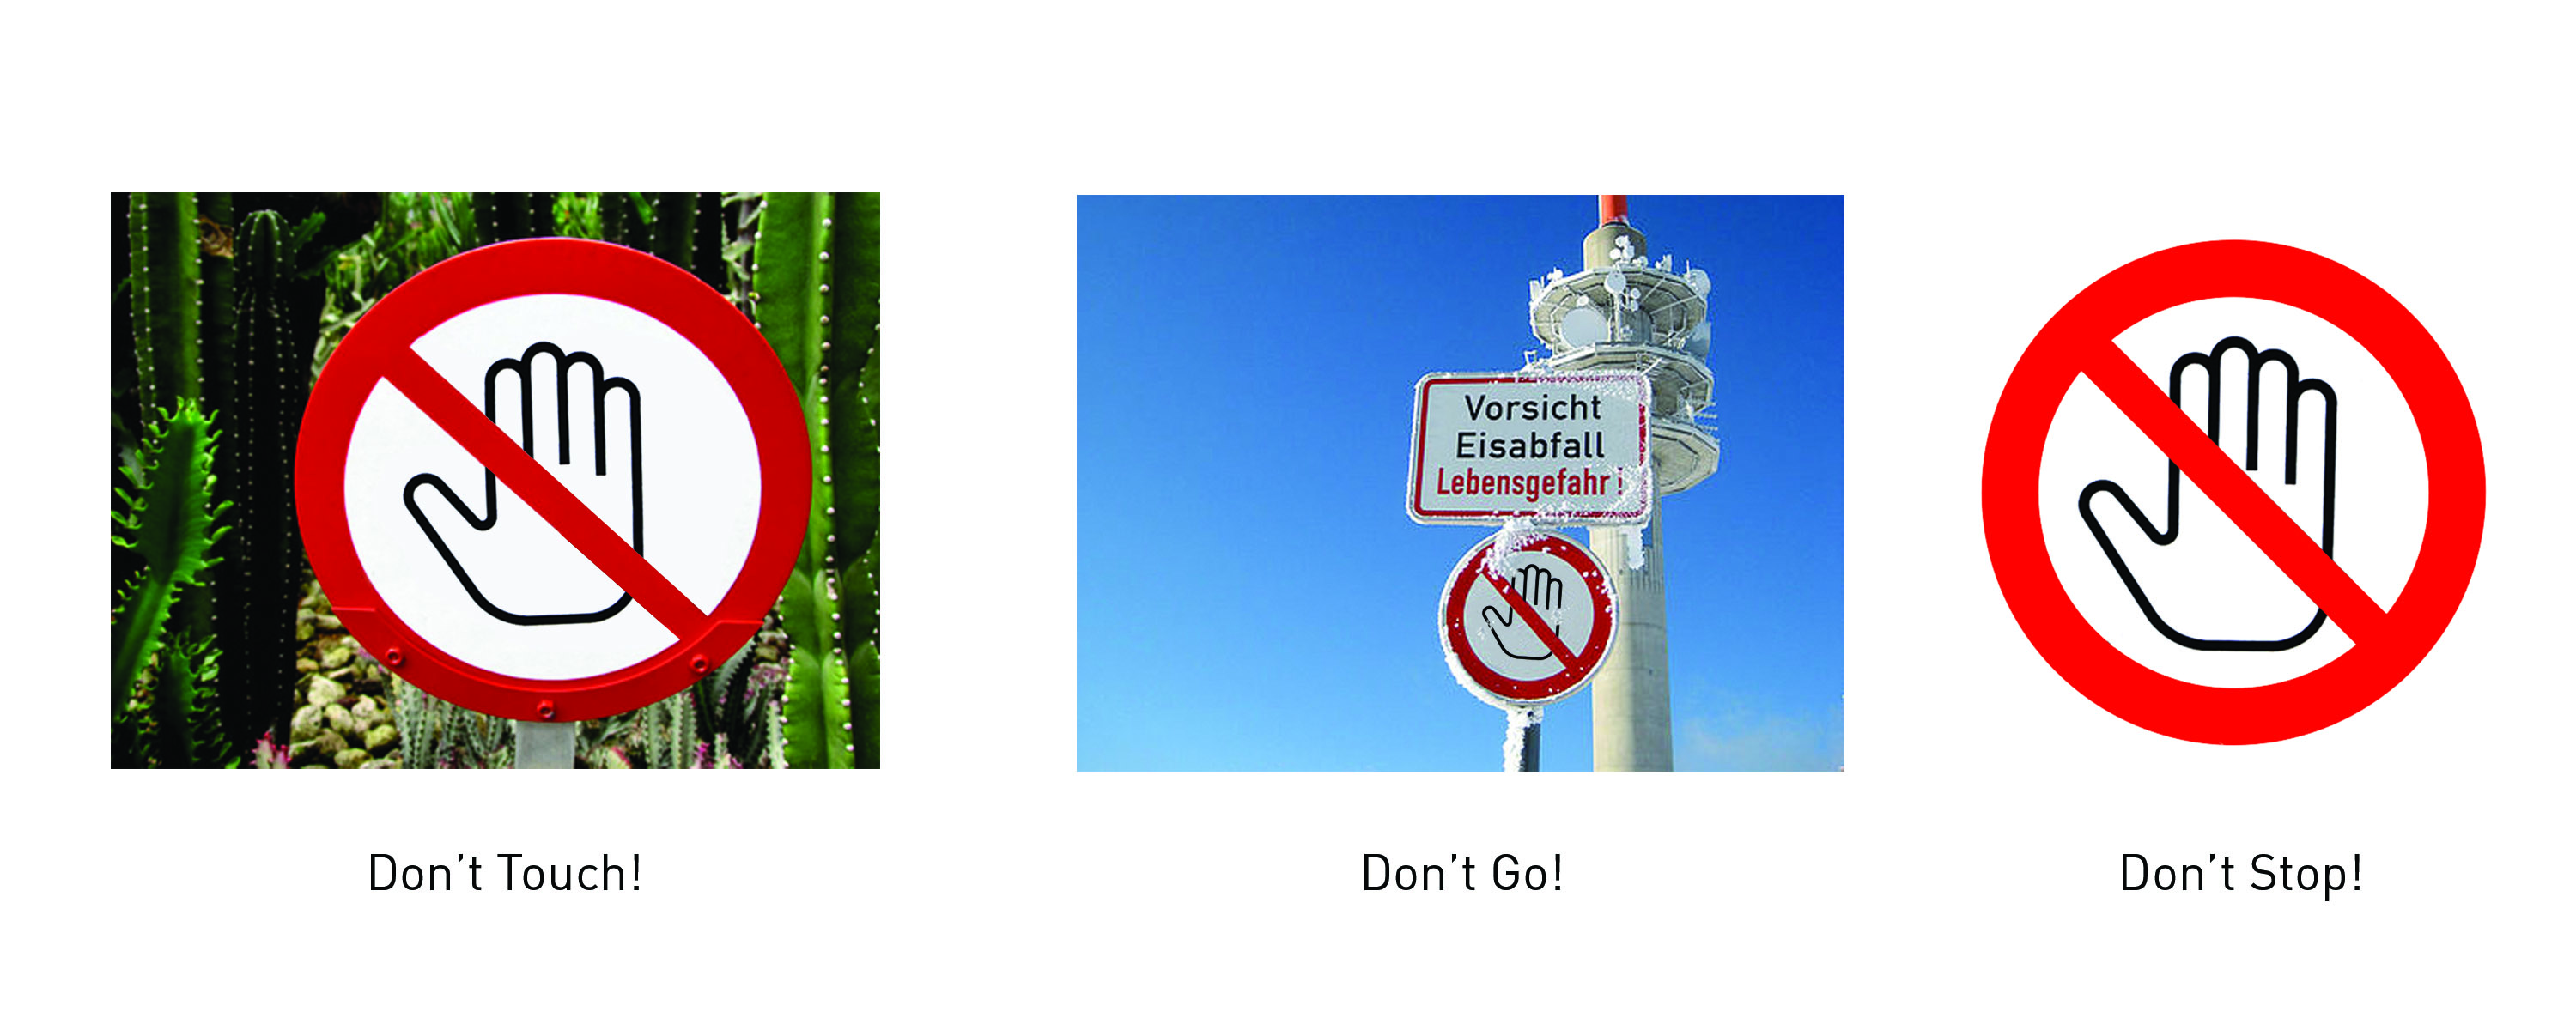 Figure 4.: Context Changes Connotation Dramatically: The same sign can mean Don't Touch when juxtaposed against cacti, or Don't Go where there's visible danger of being struck by falling ice. But when the same sign is removed completely from the context of any signifier, the resulting meaning changes completely. Source: Dobson, T. 2016.